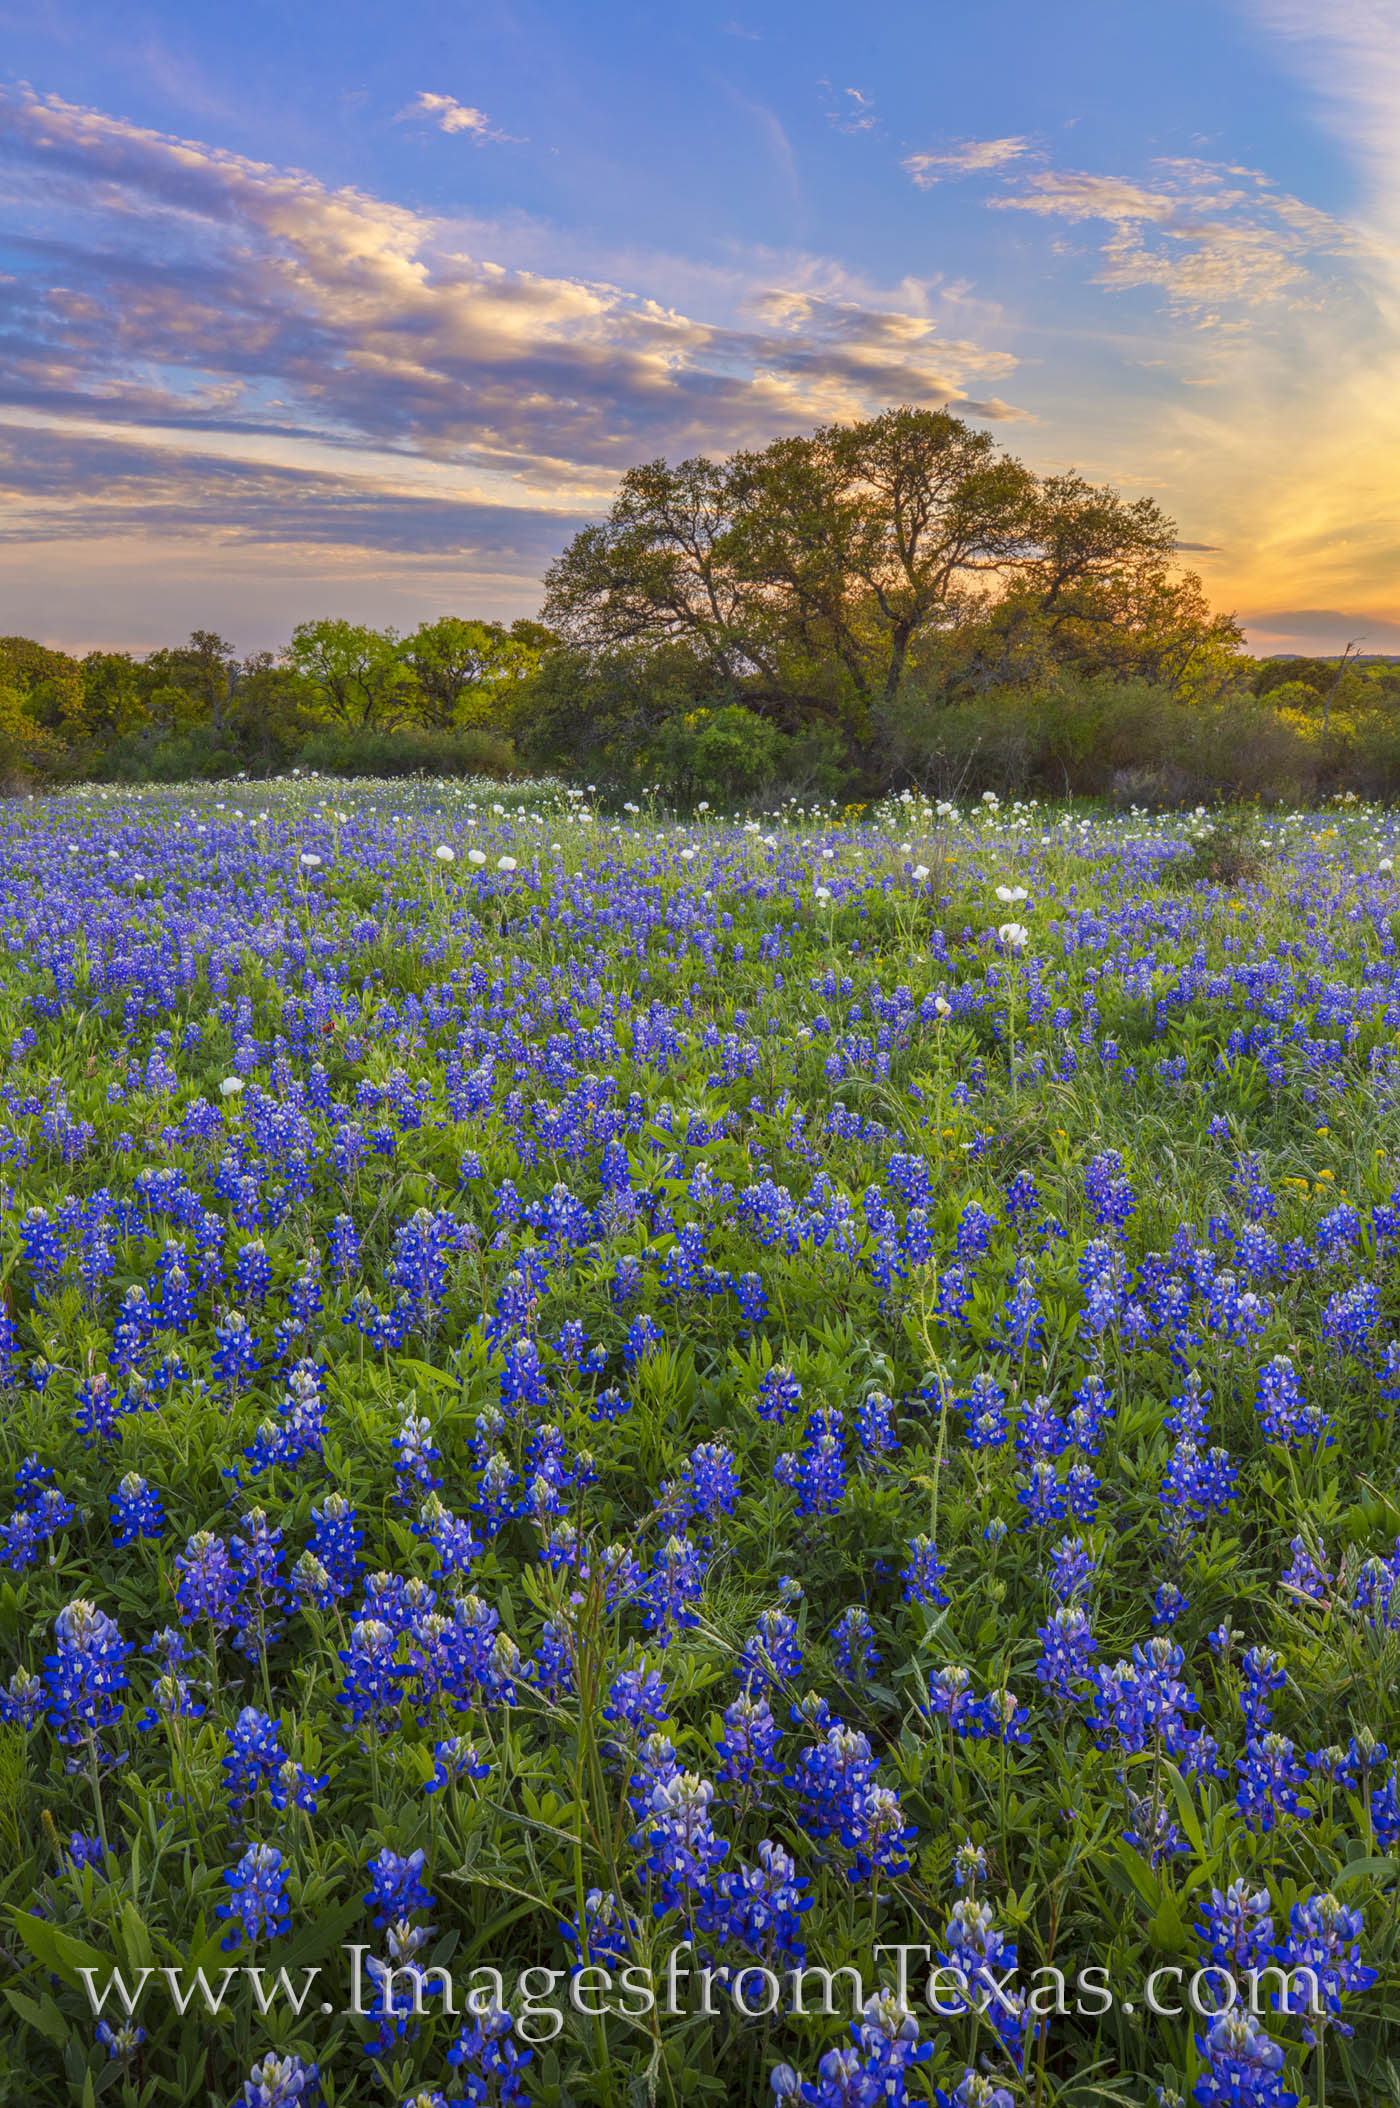 bluebonnets, sunset, peace, wildflowers, spring, 2020, hill country, country roads, rural, photo